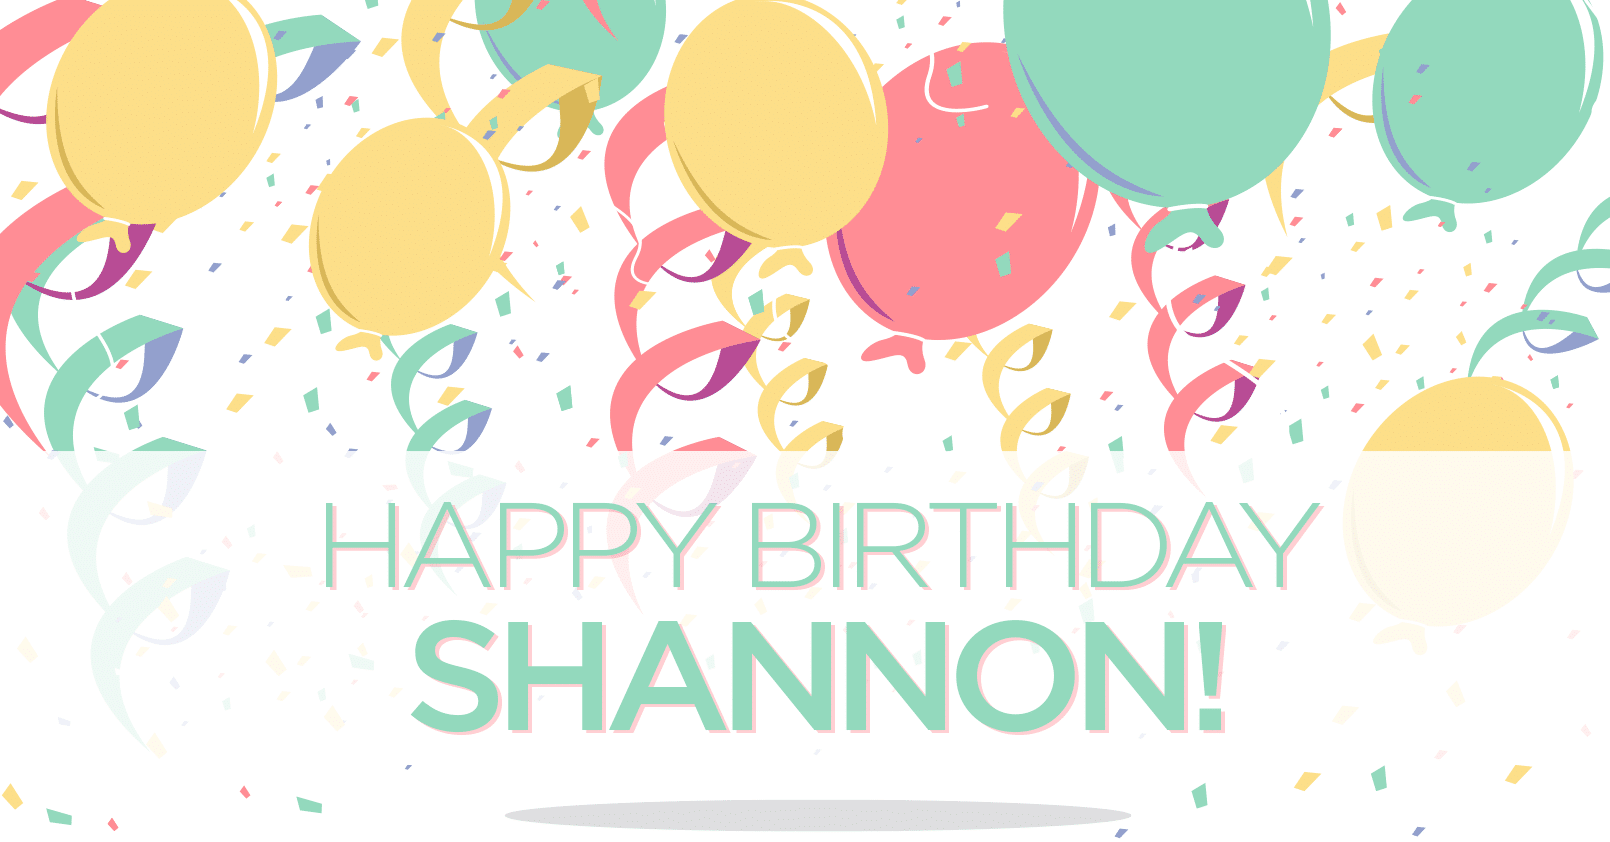 Happy Birthday Shannon!